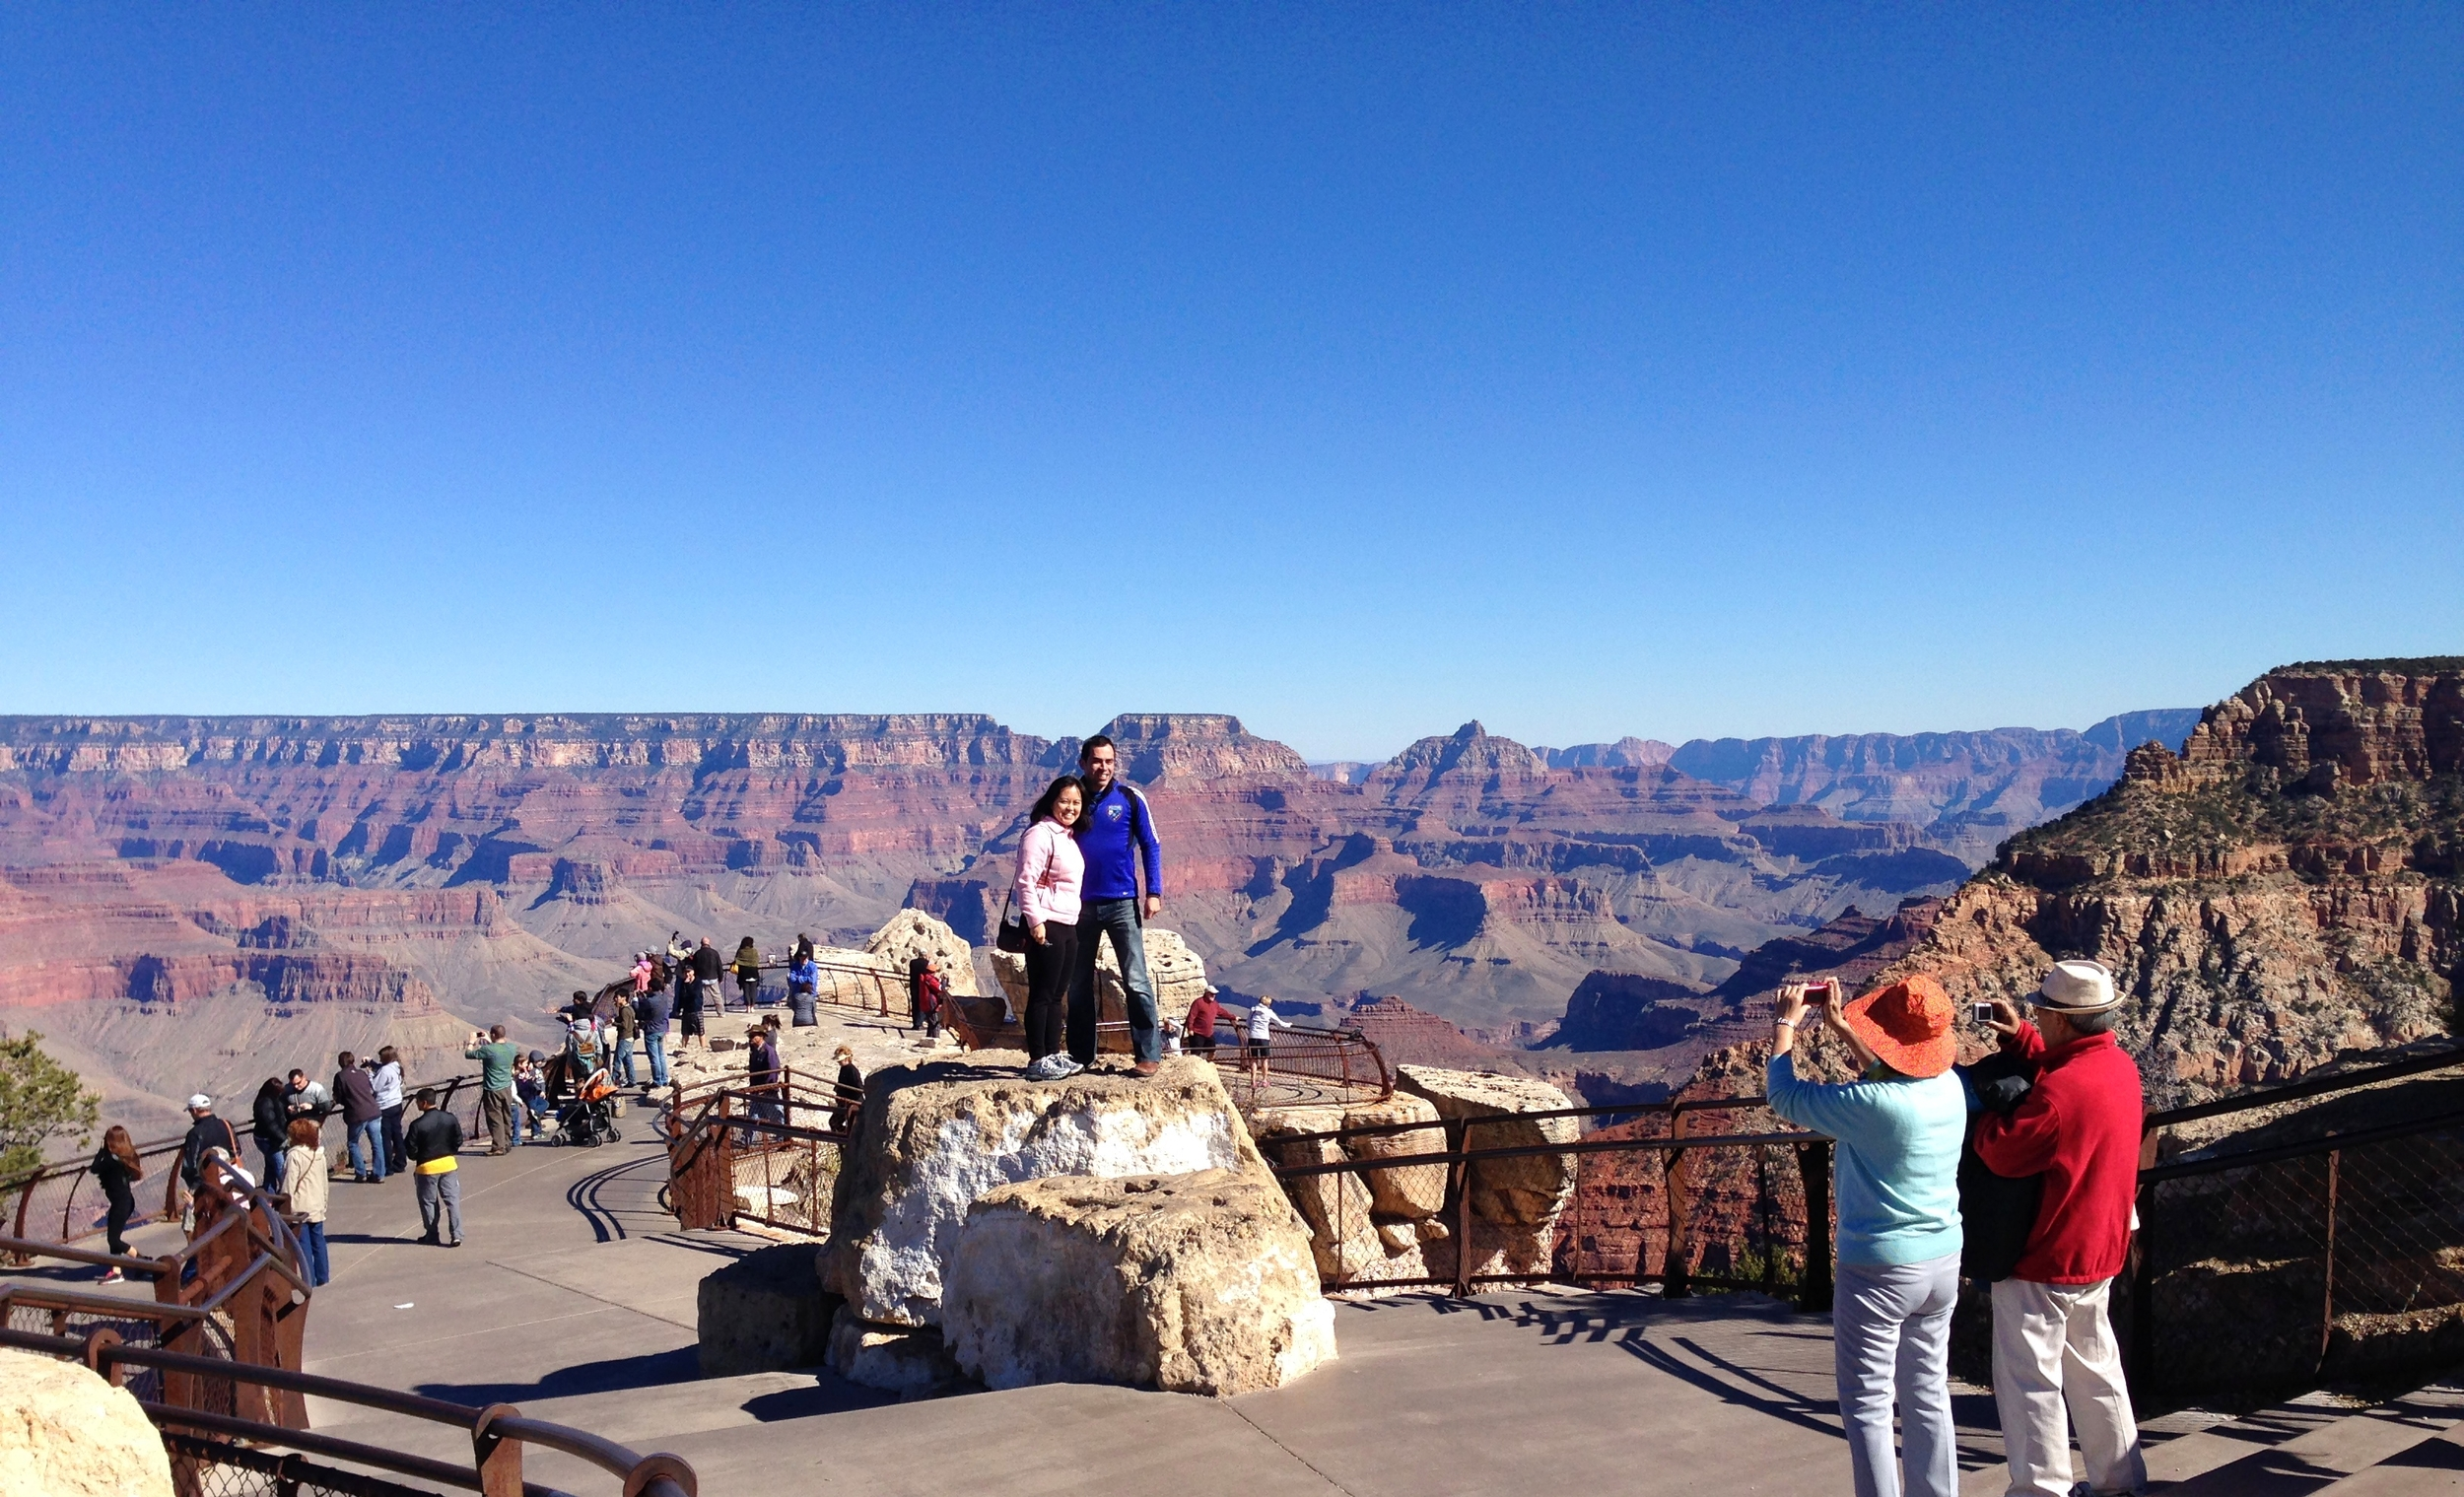 The world comes to experience the Grand Canyon. How many different languages will you hear on your visit?